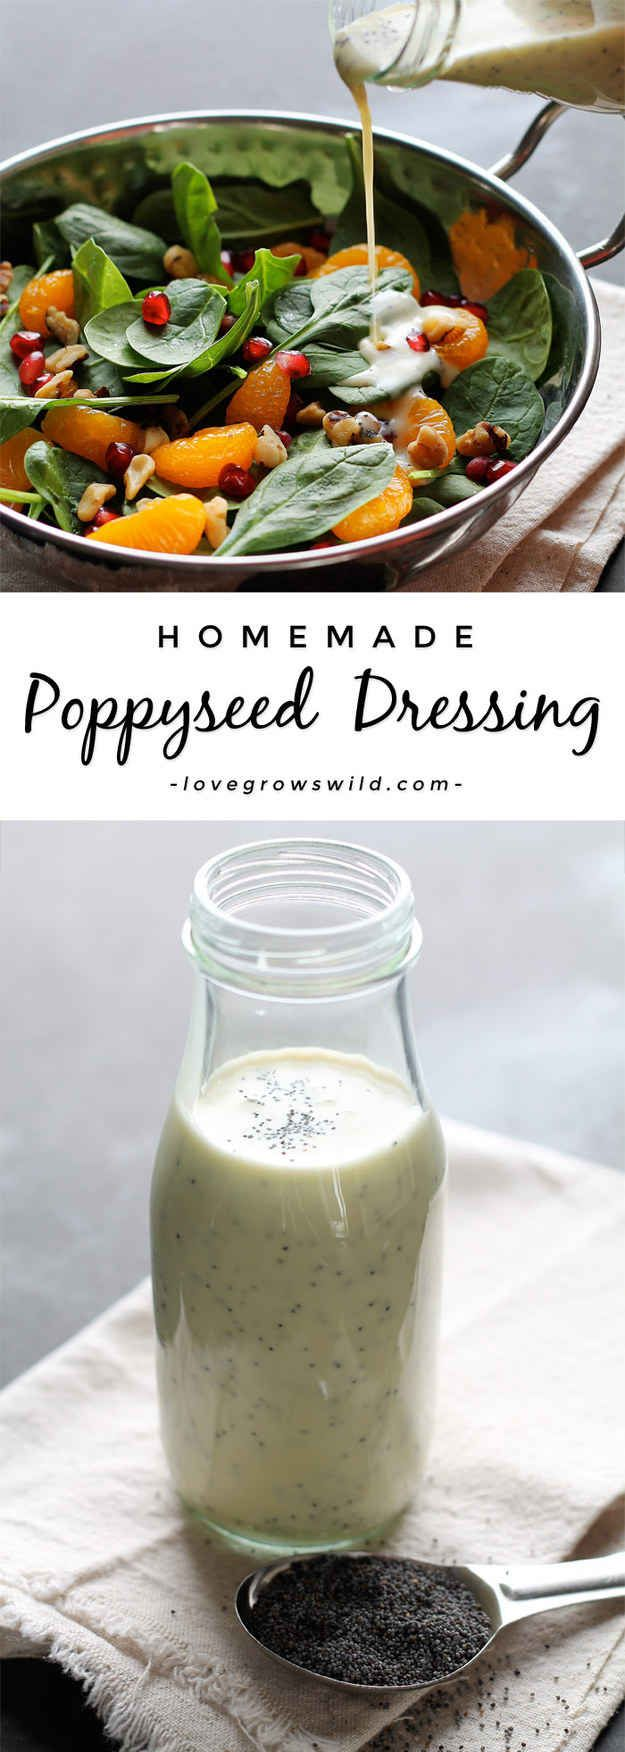 Whole bunch of homemade dressing recipes                                                                                                                                                                                 More